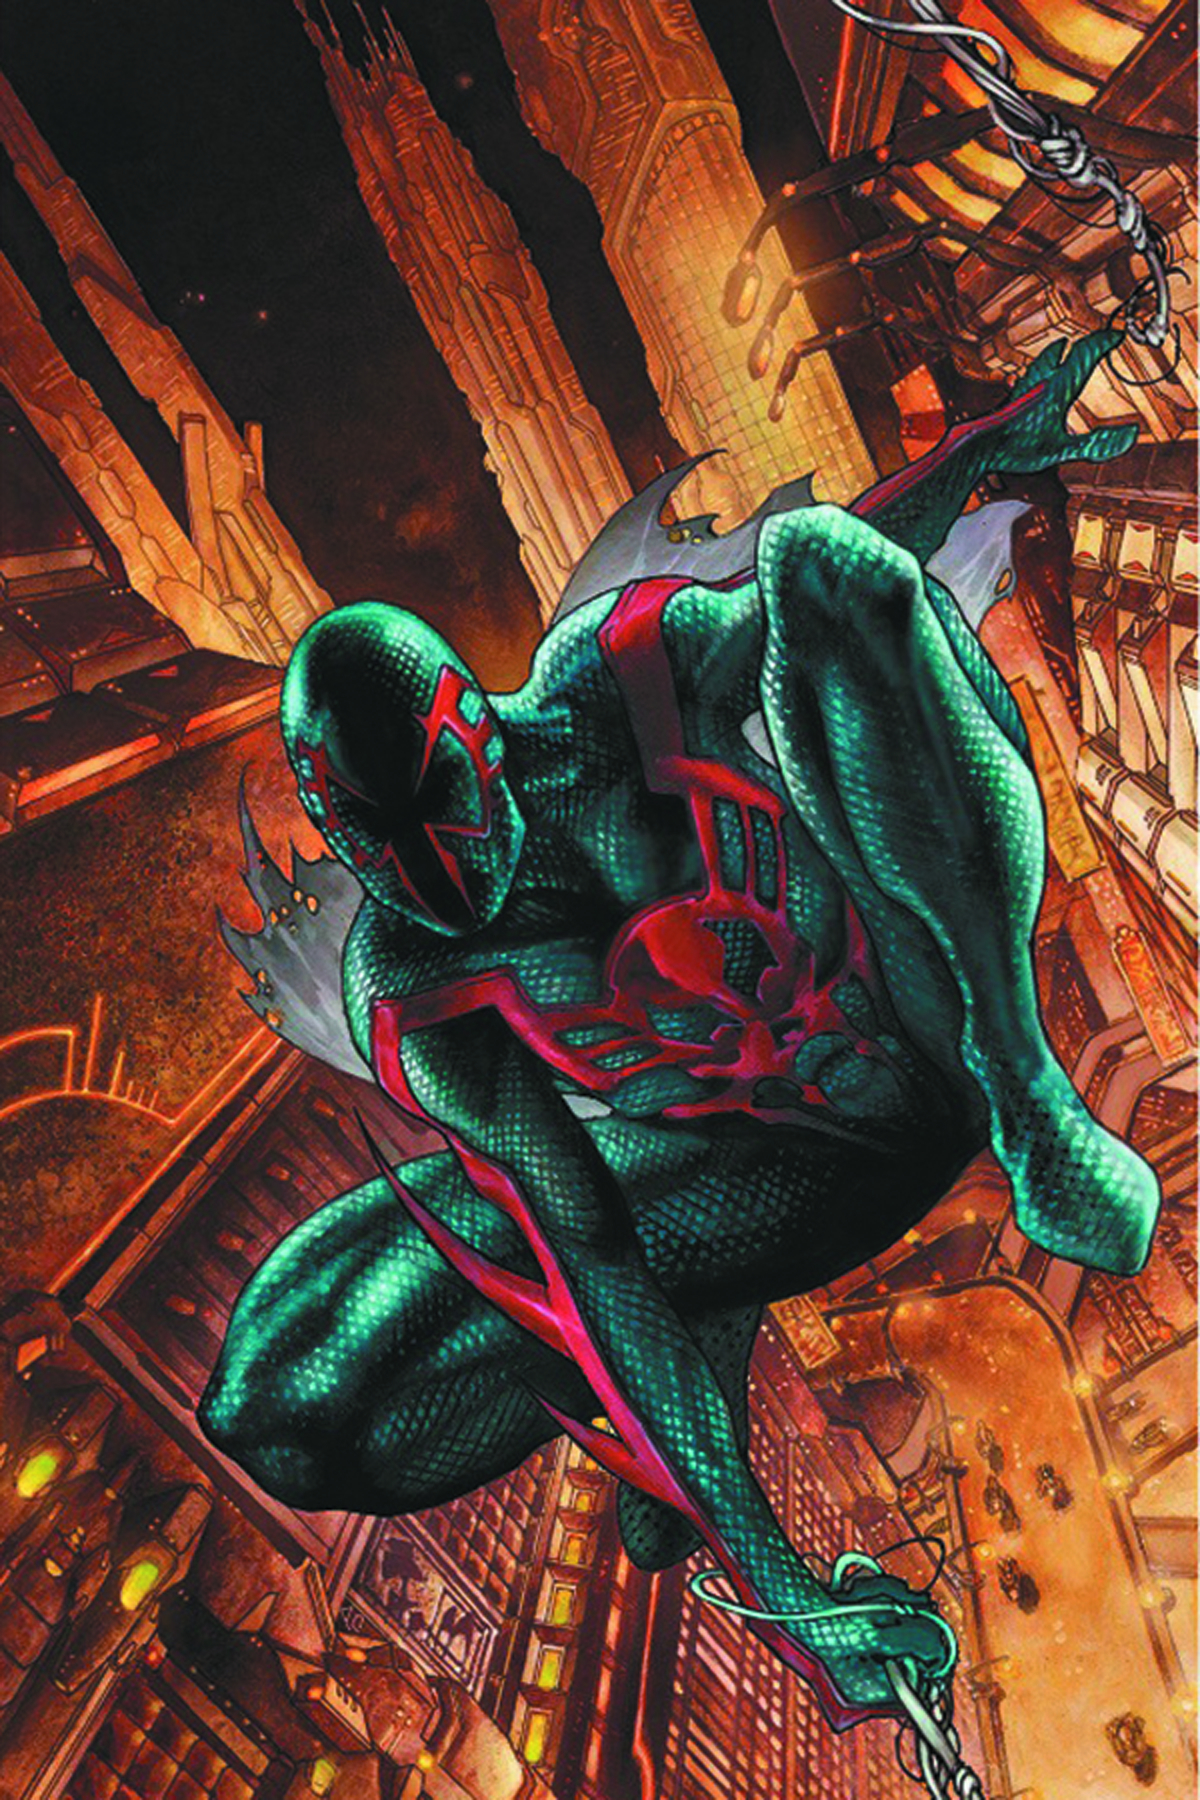 DF SPIDER MAN 2099 #1 PETER DAVID SGN